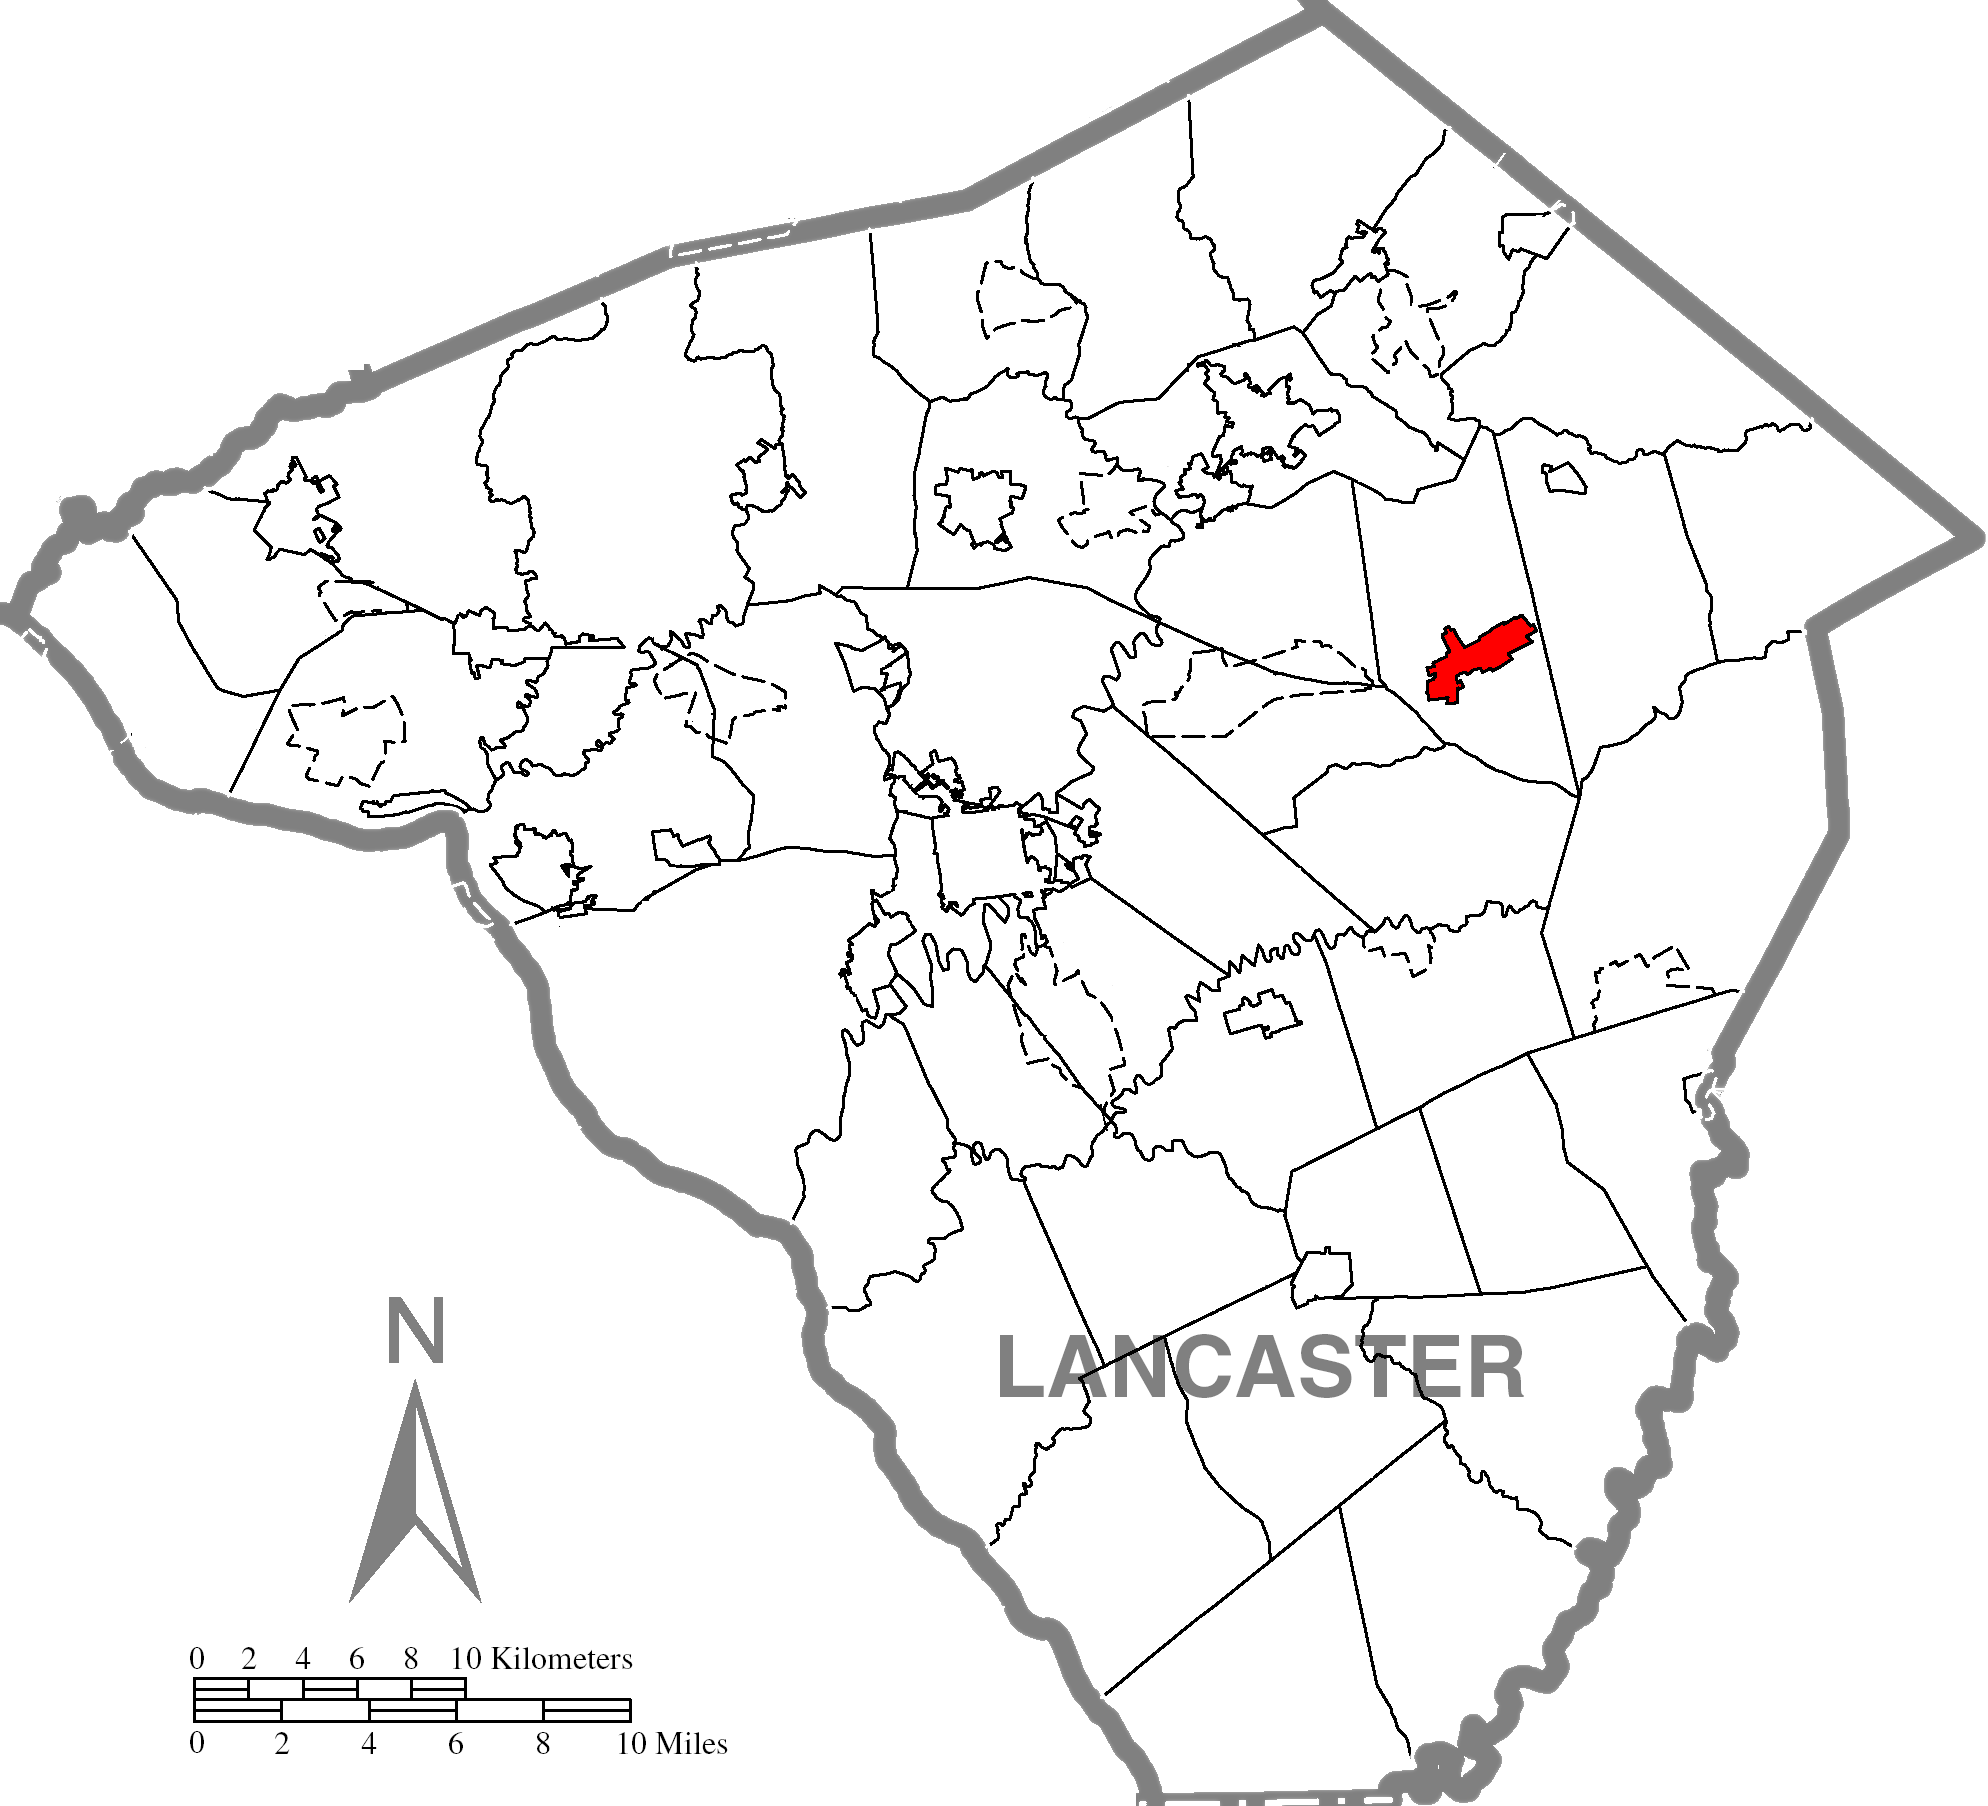 New Hollandc Lancaster County Highlighted